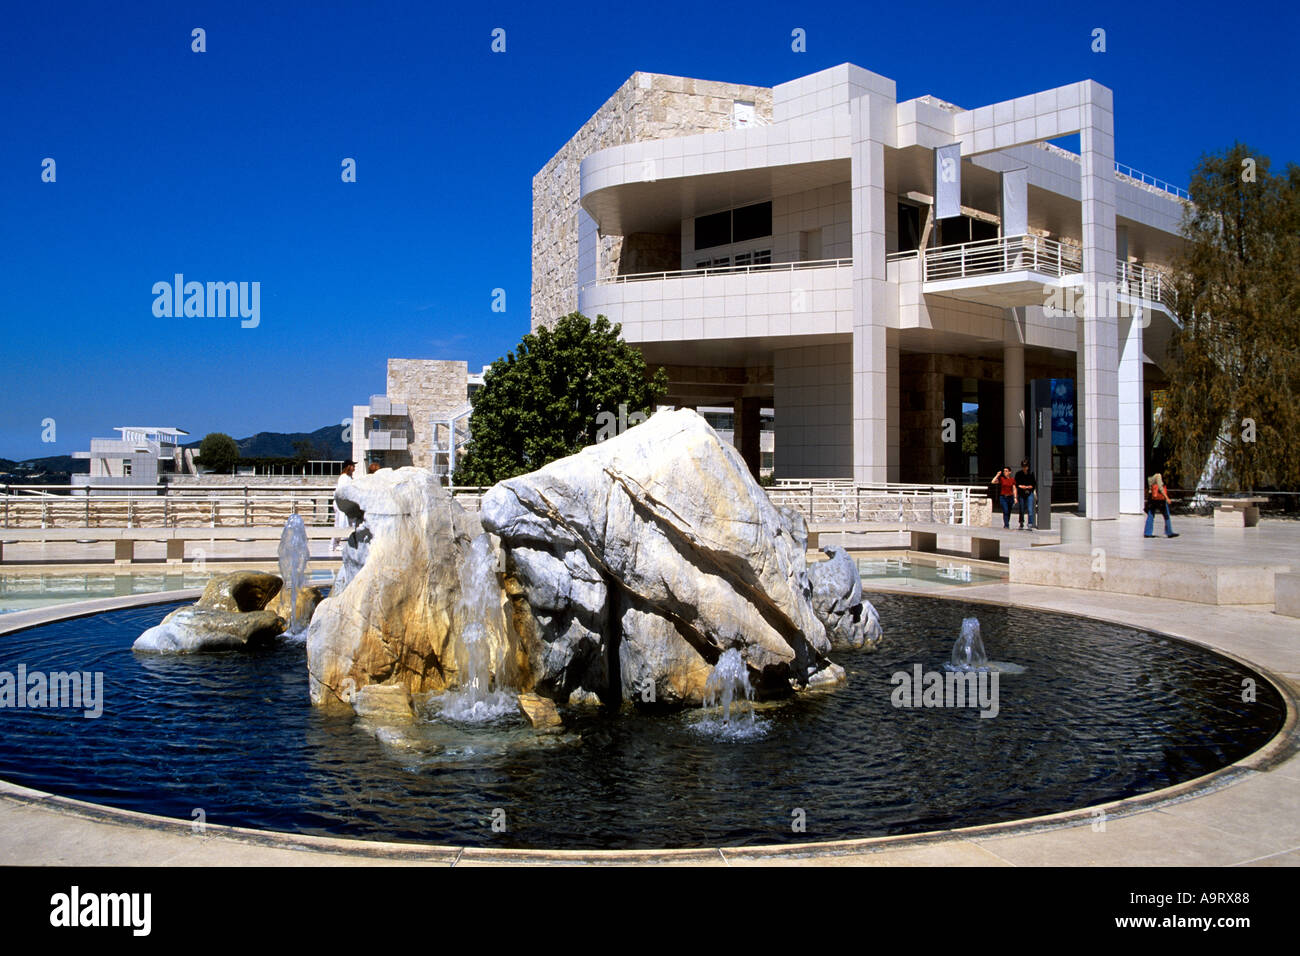 THE GETTY CENTER LOS ANGELES CALIFORNIA - Stock Image